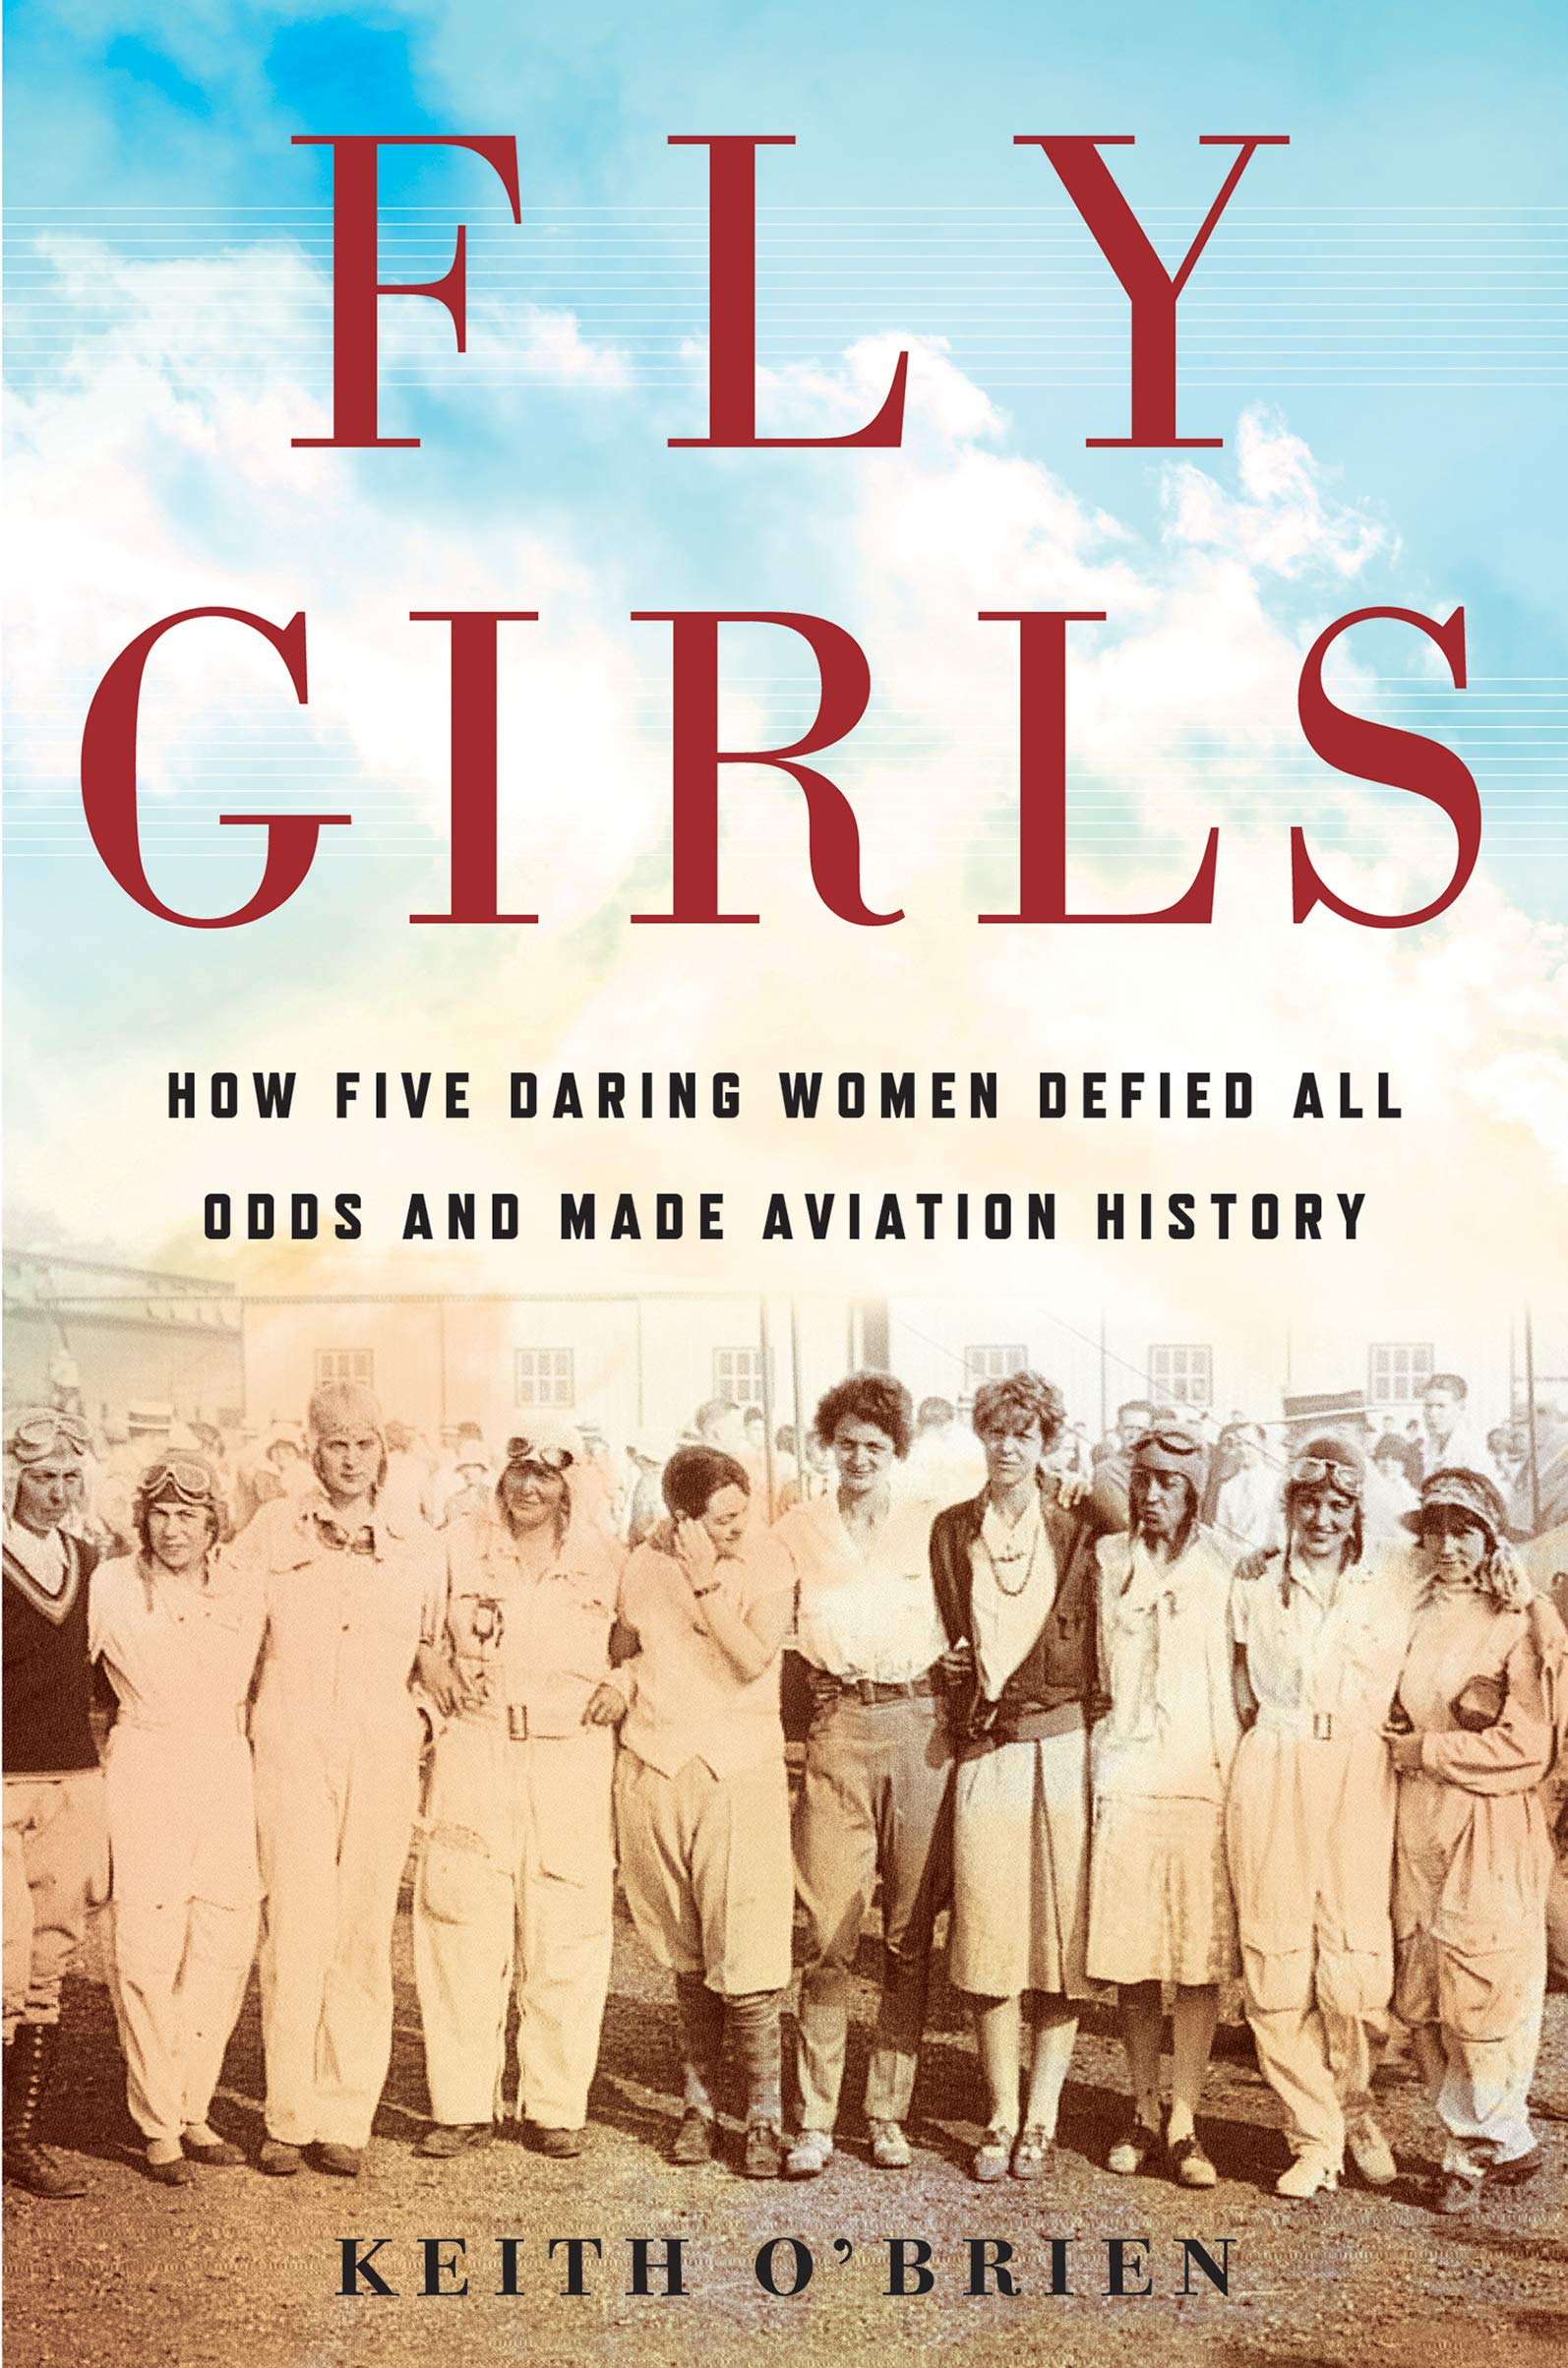 Fly Girls: How Five Daring Women Defied All Odds and Made Aviation History Paperback – April 9, 2019 Keith O' Brien Eamon Dolan/Mariner Books 1328592790 GENERAL